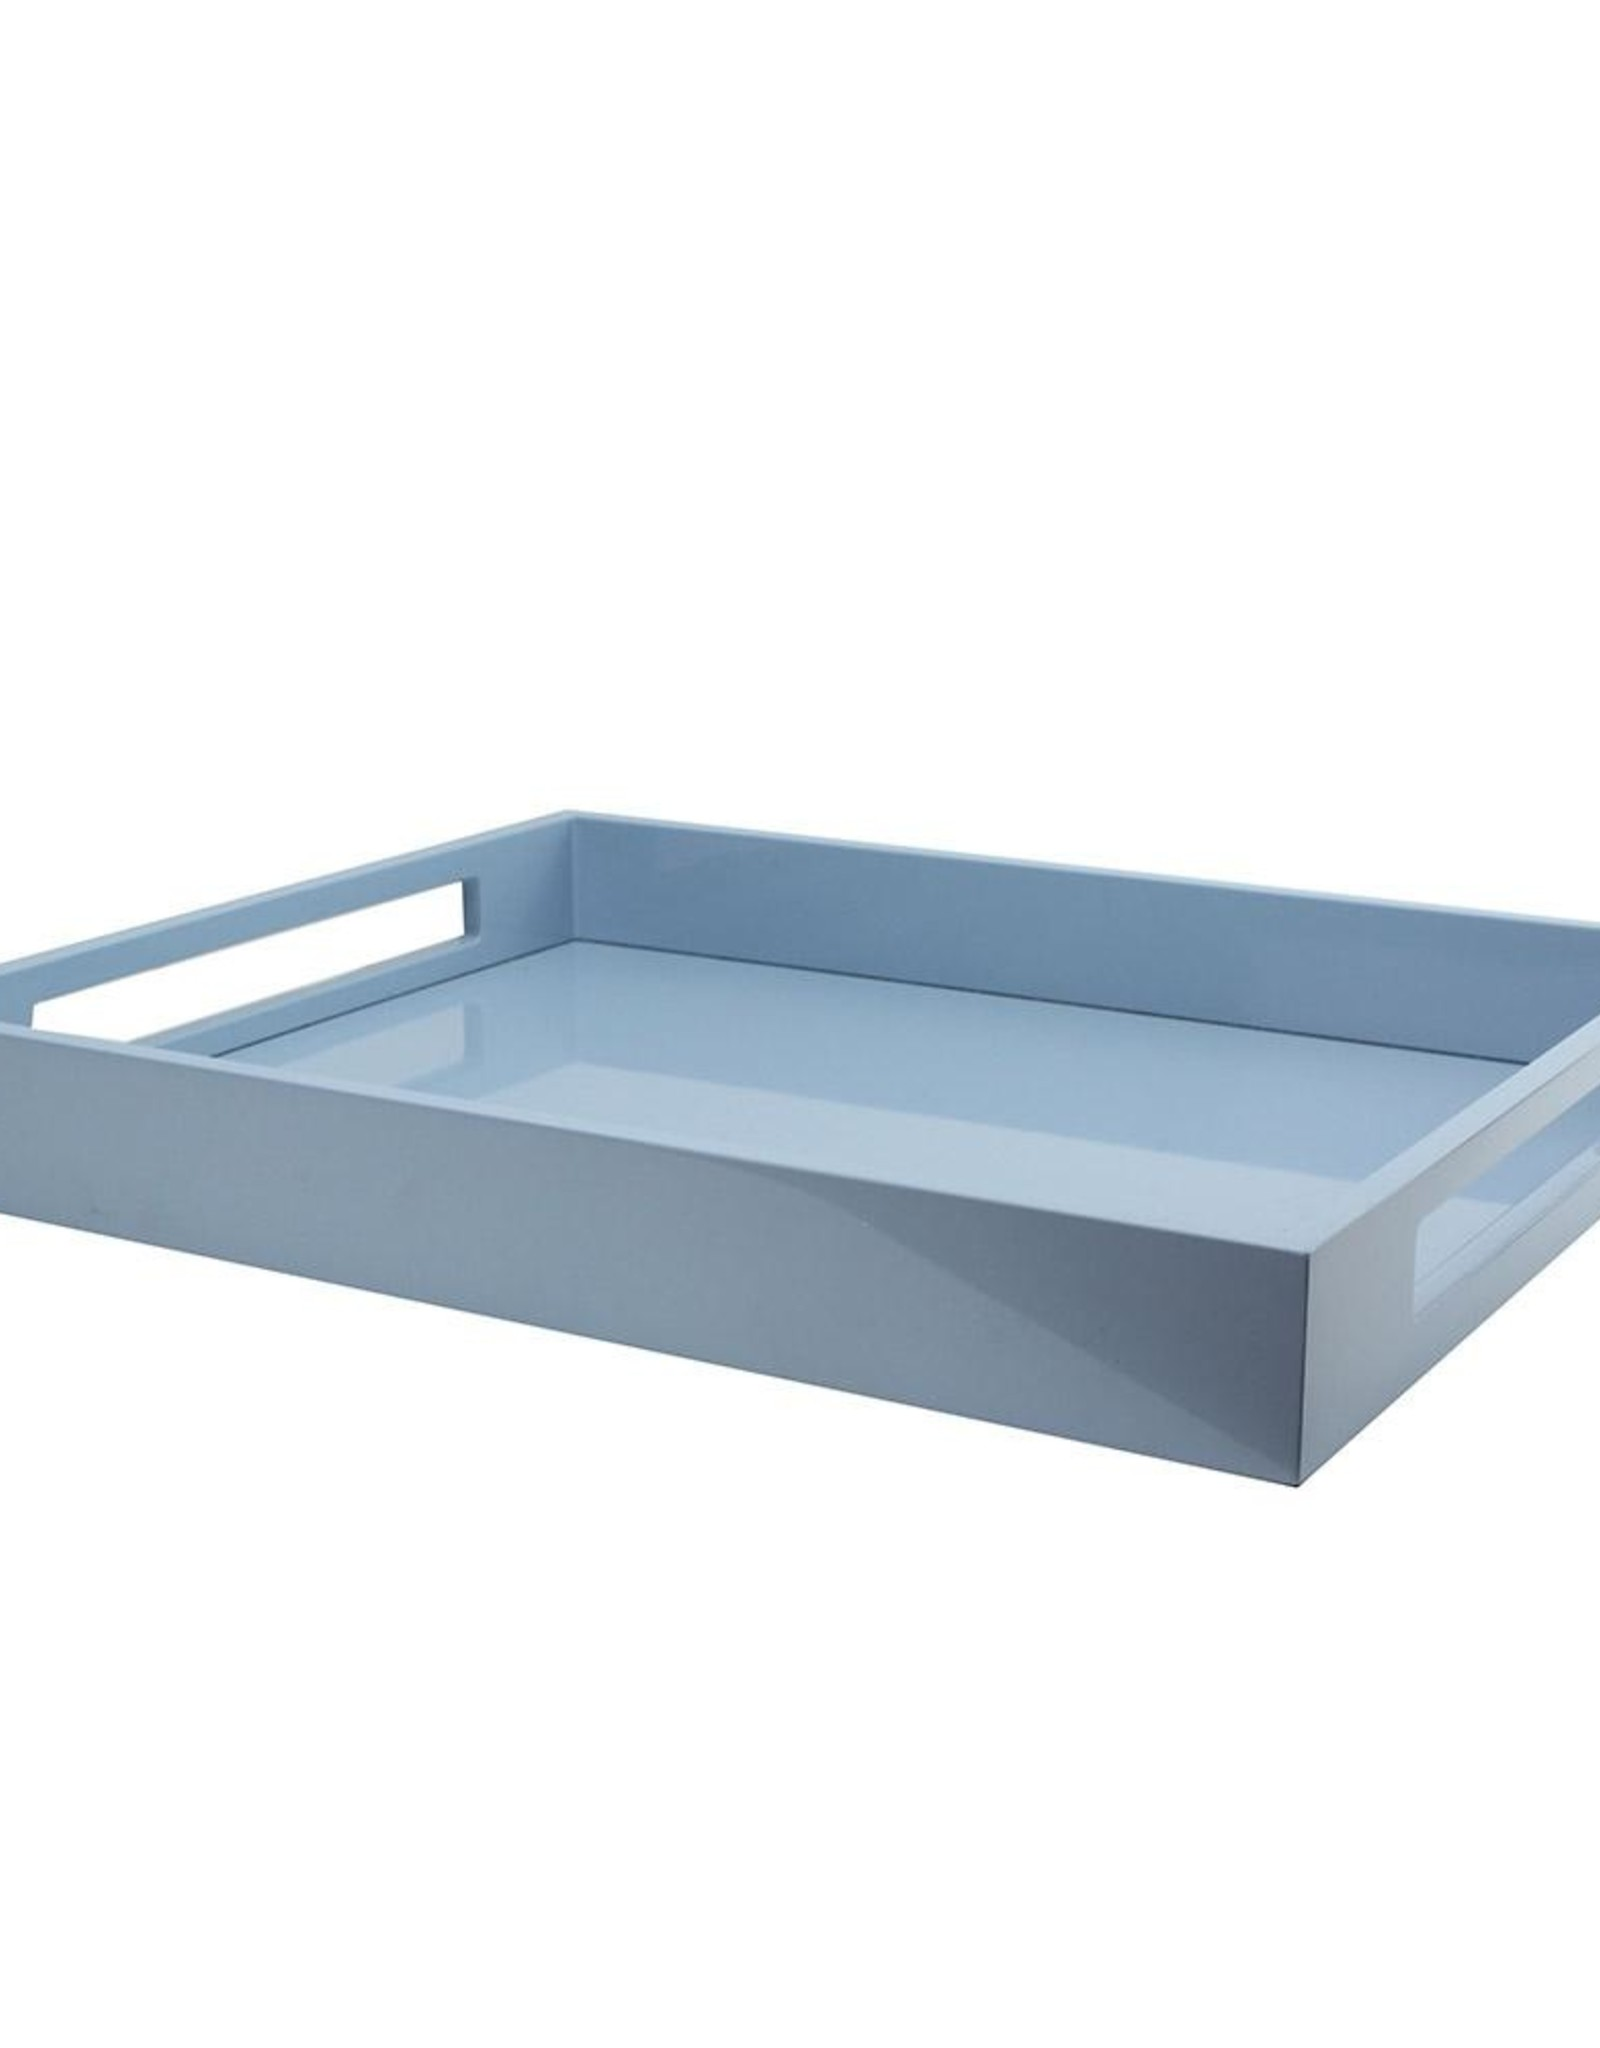 Addison Ross Lacquered Serving Tray - Pale Blue